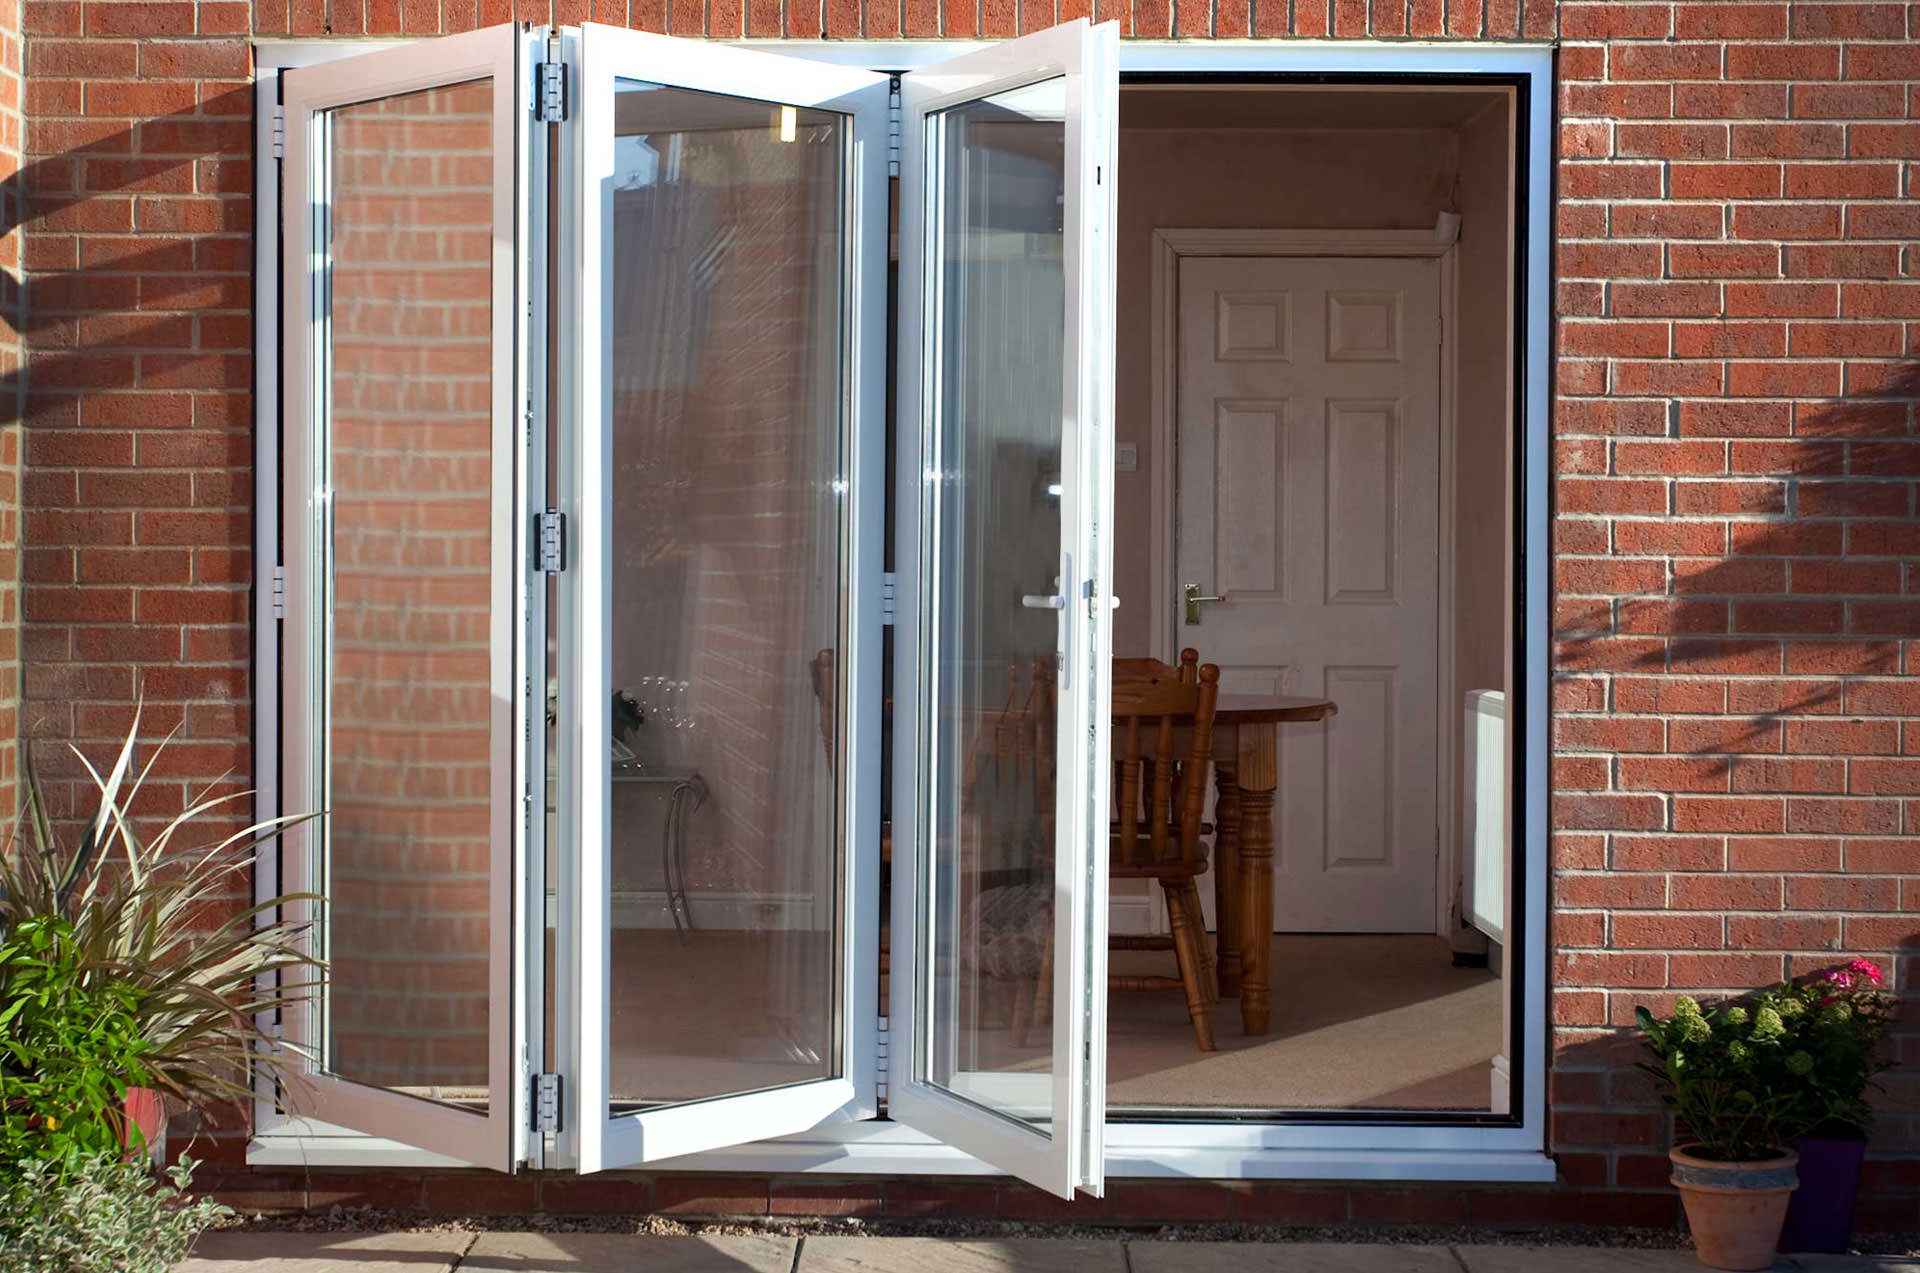 Folding Bifold Doors : Bi fold doors epsom surrey folding coulsdon